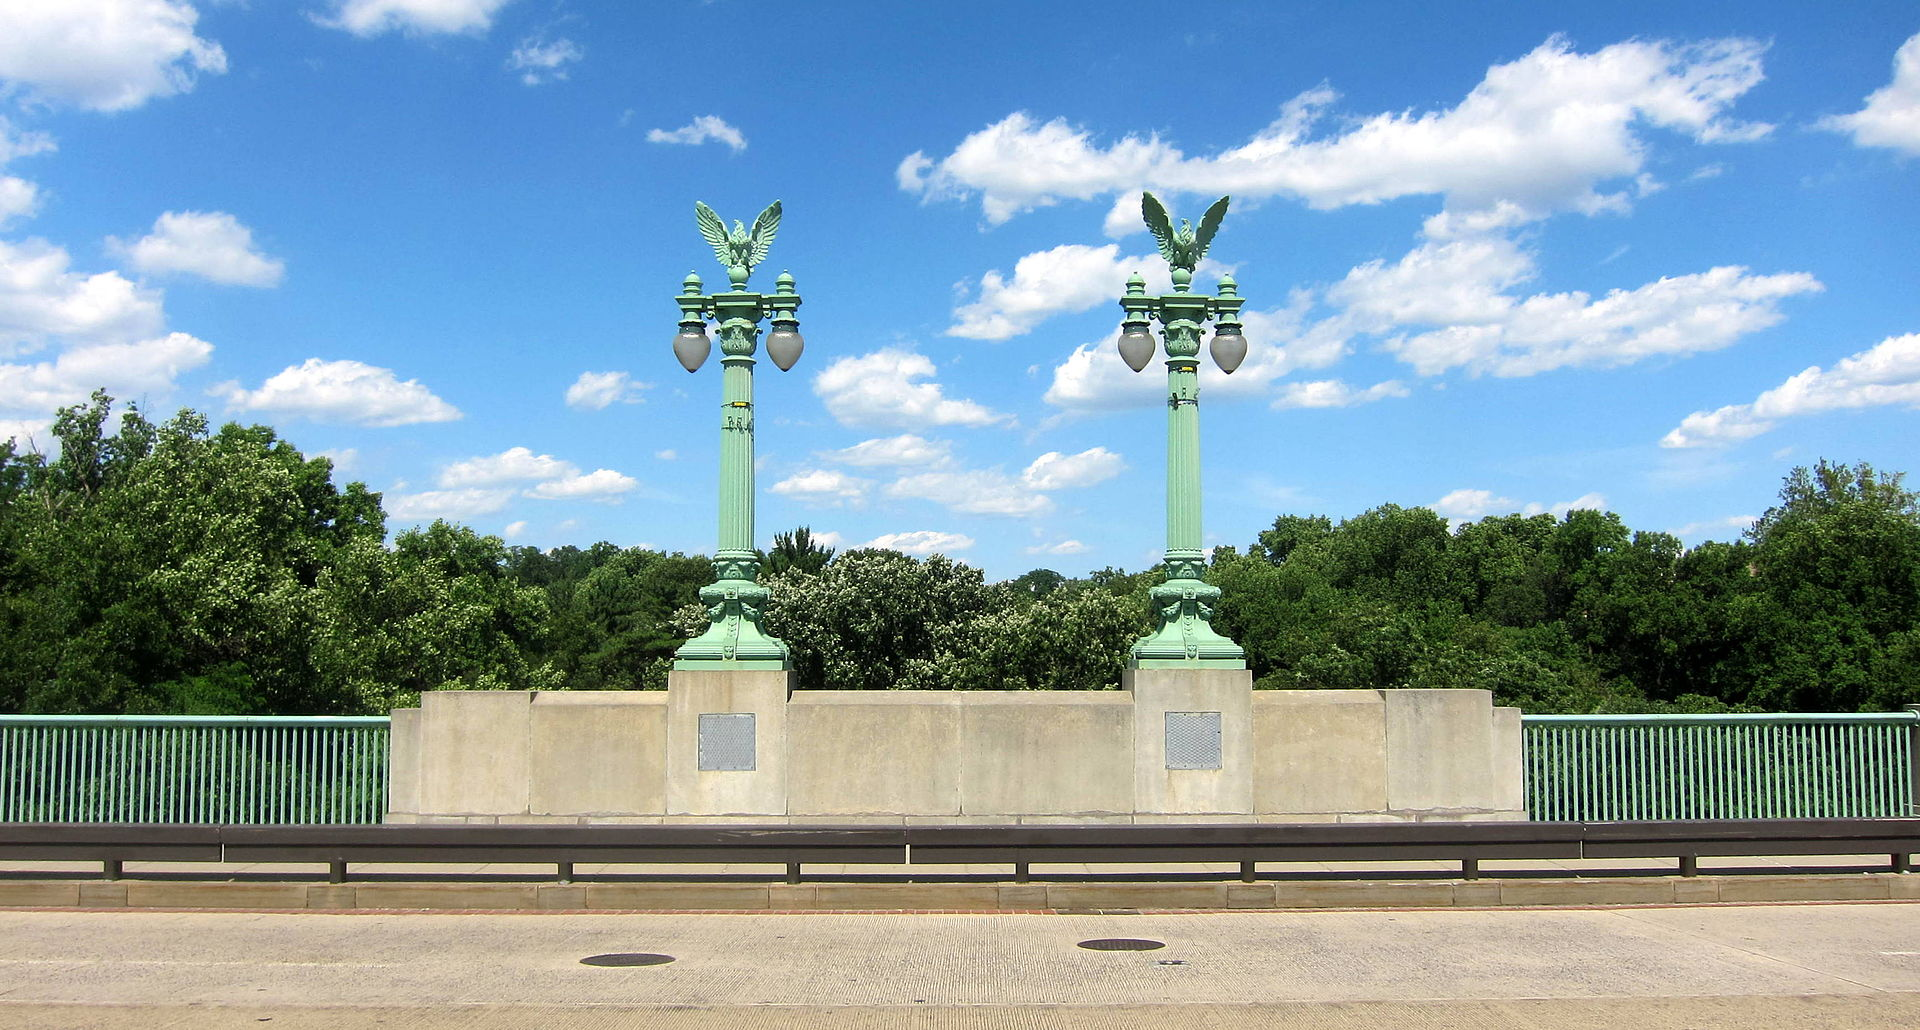 The decorative lampposts designed by Ernest C. Bairstow give the Taft Bridge a patriotic flair. Photo by AgnosticPreachersKid, Wikimedia.